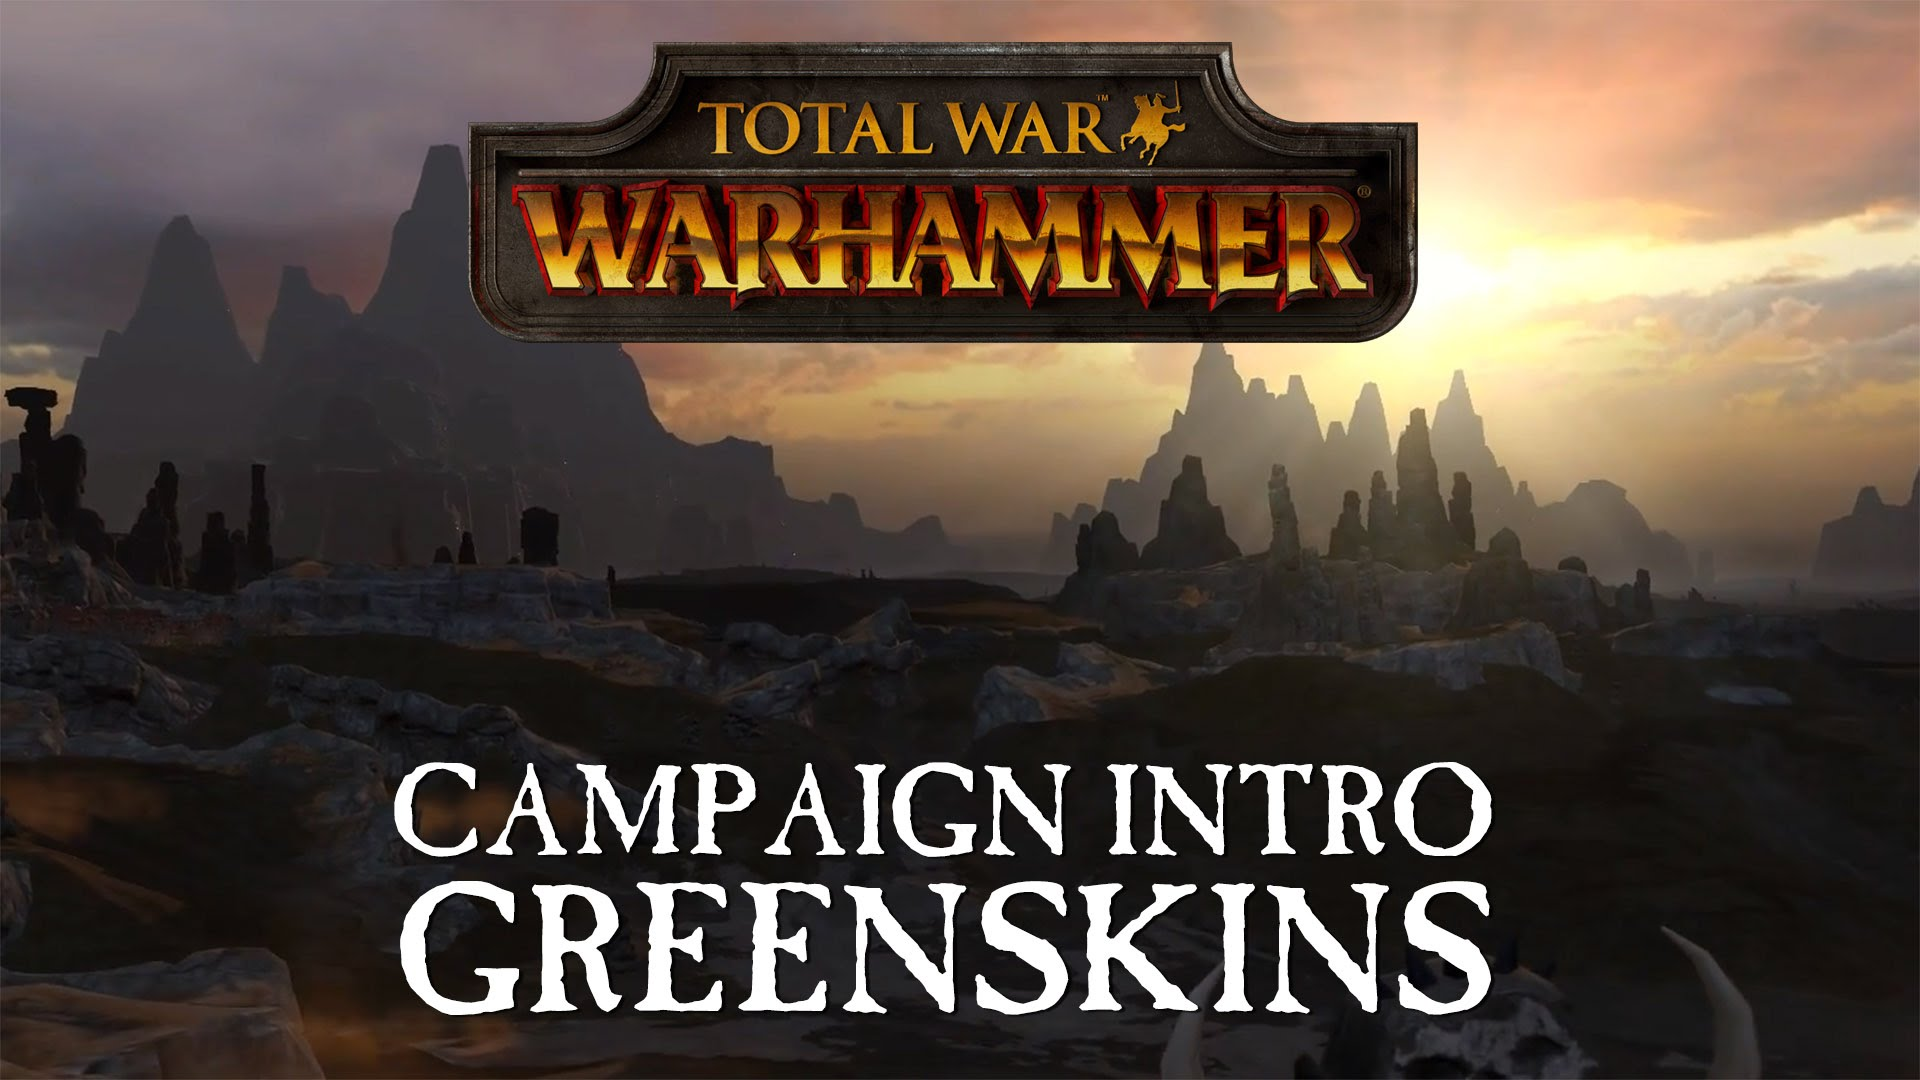 Total War: WARHAMMER - Greenskins Intro